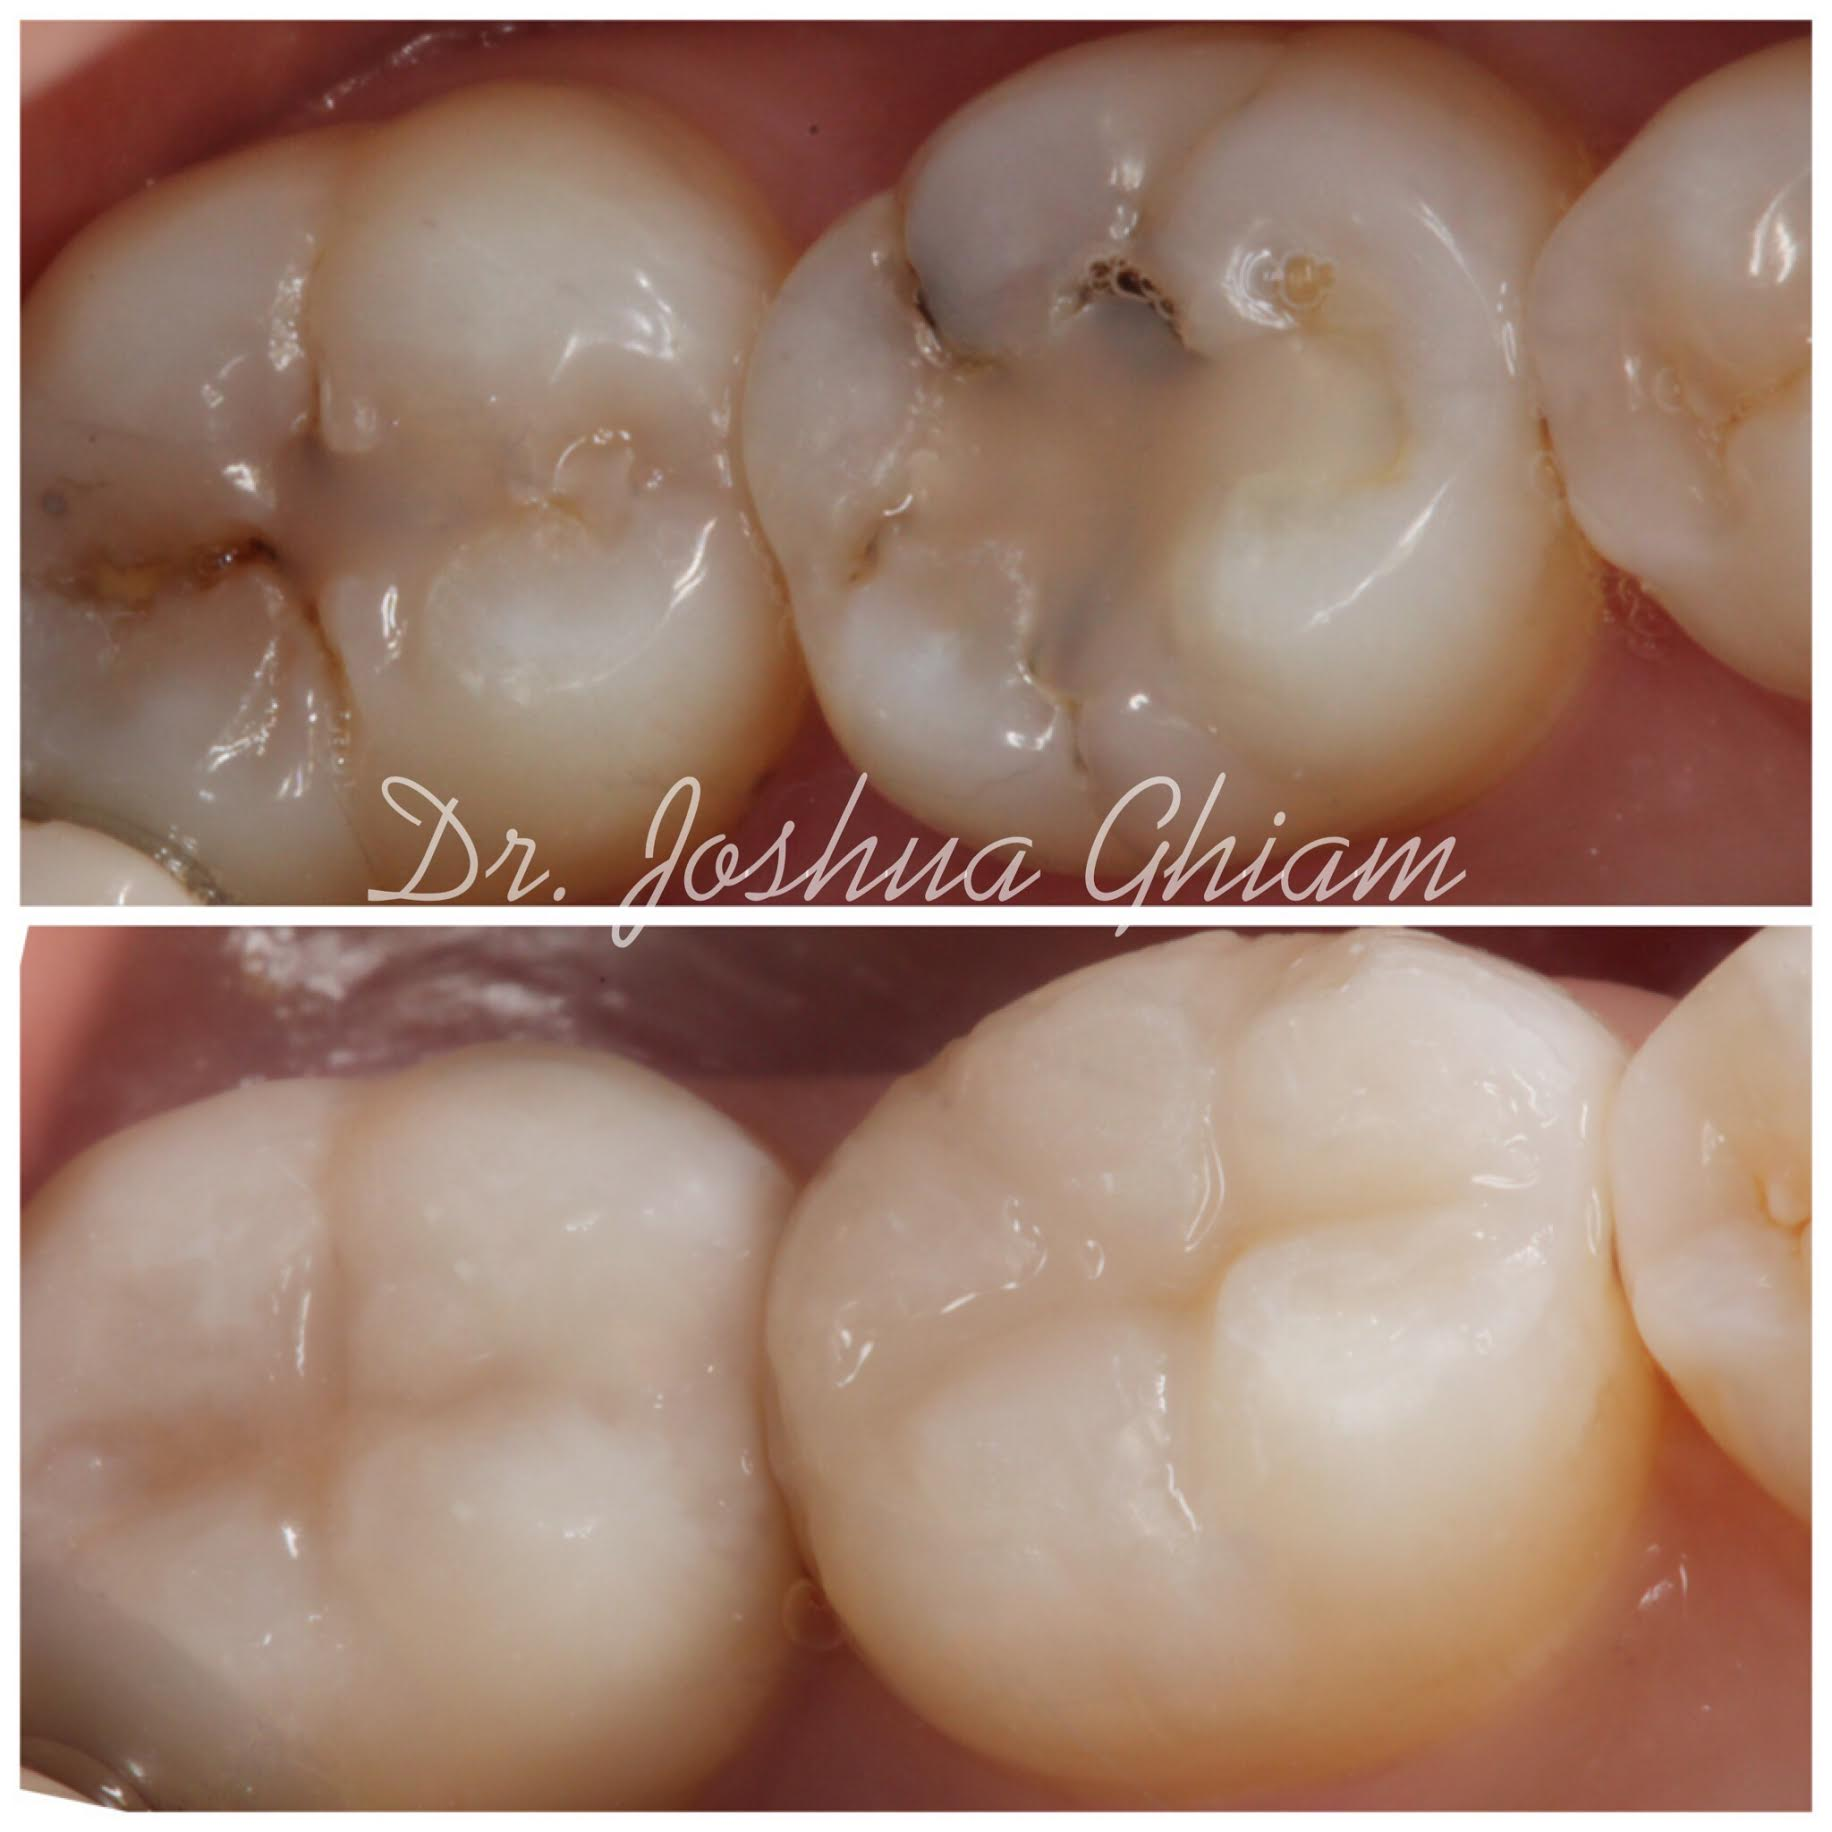 Before & After Smile Gallery, Los Angeles Cosmetic Dentist, Photo 42